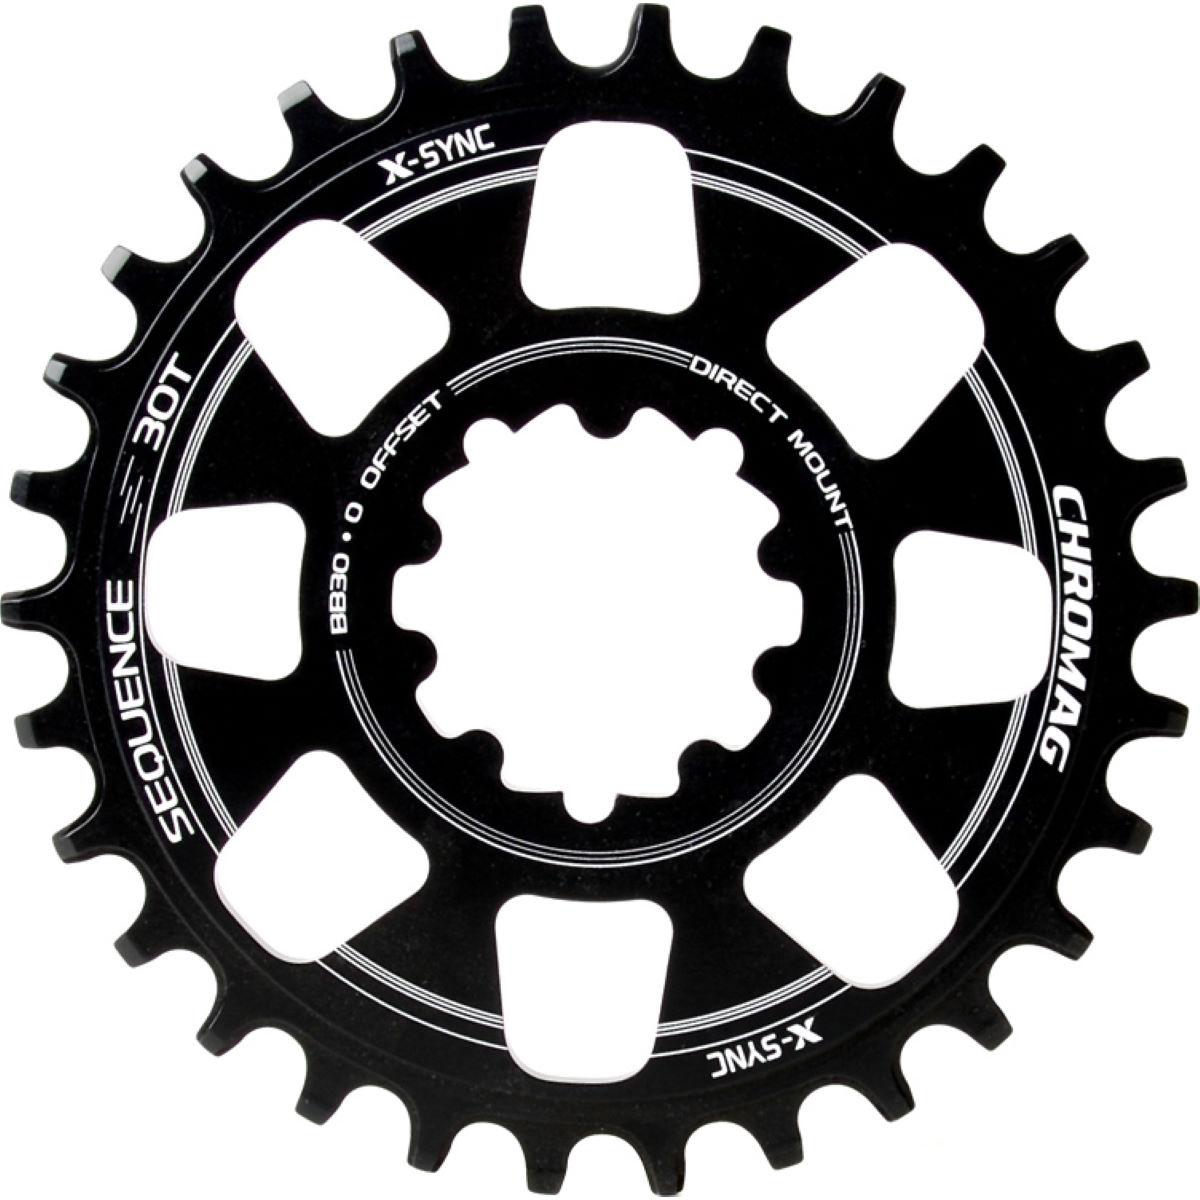 Chromag Chromag Sequence BB30 Direct Mount Chainring   Chain Rings